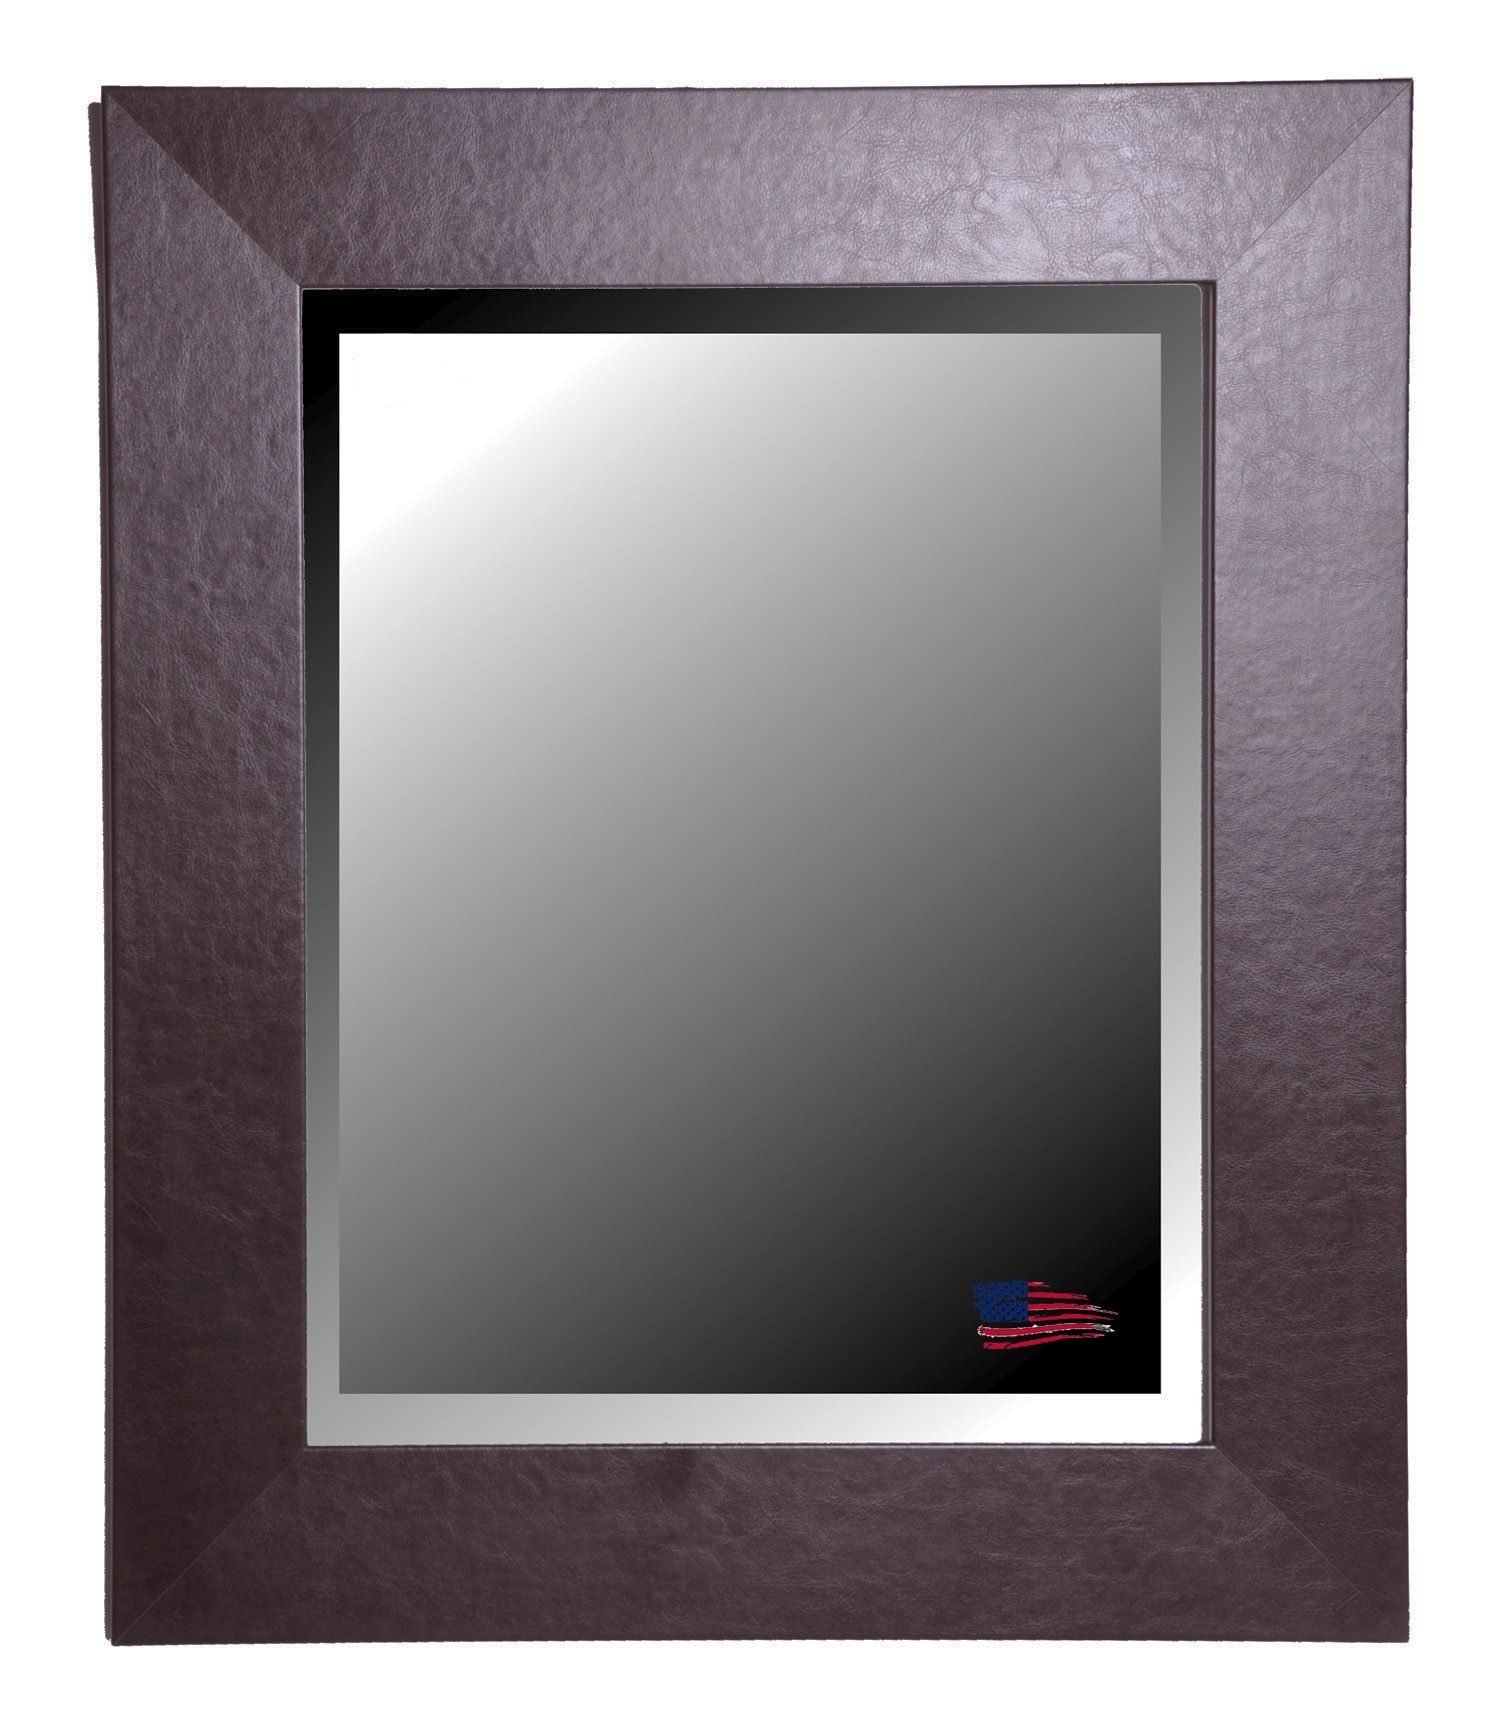 12 wide wall mirror httpdrrw pinterest 12 wide wall mirror amipublicfo Images